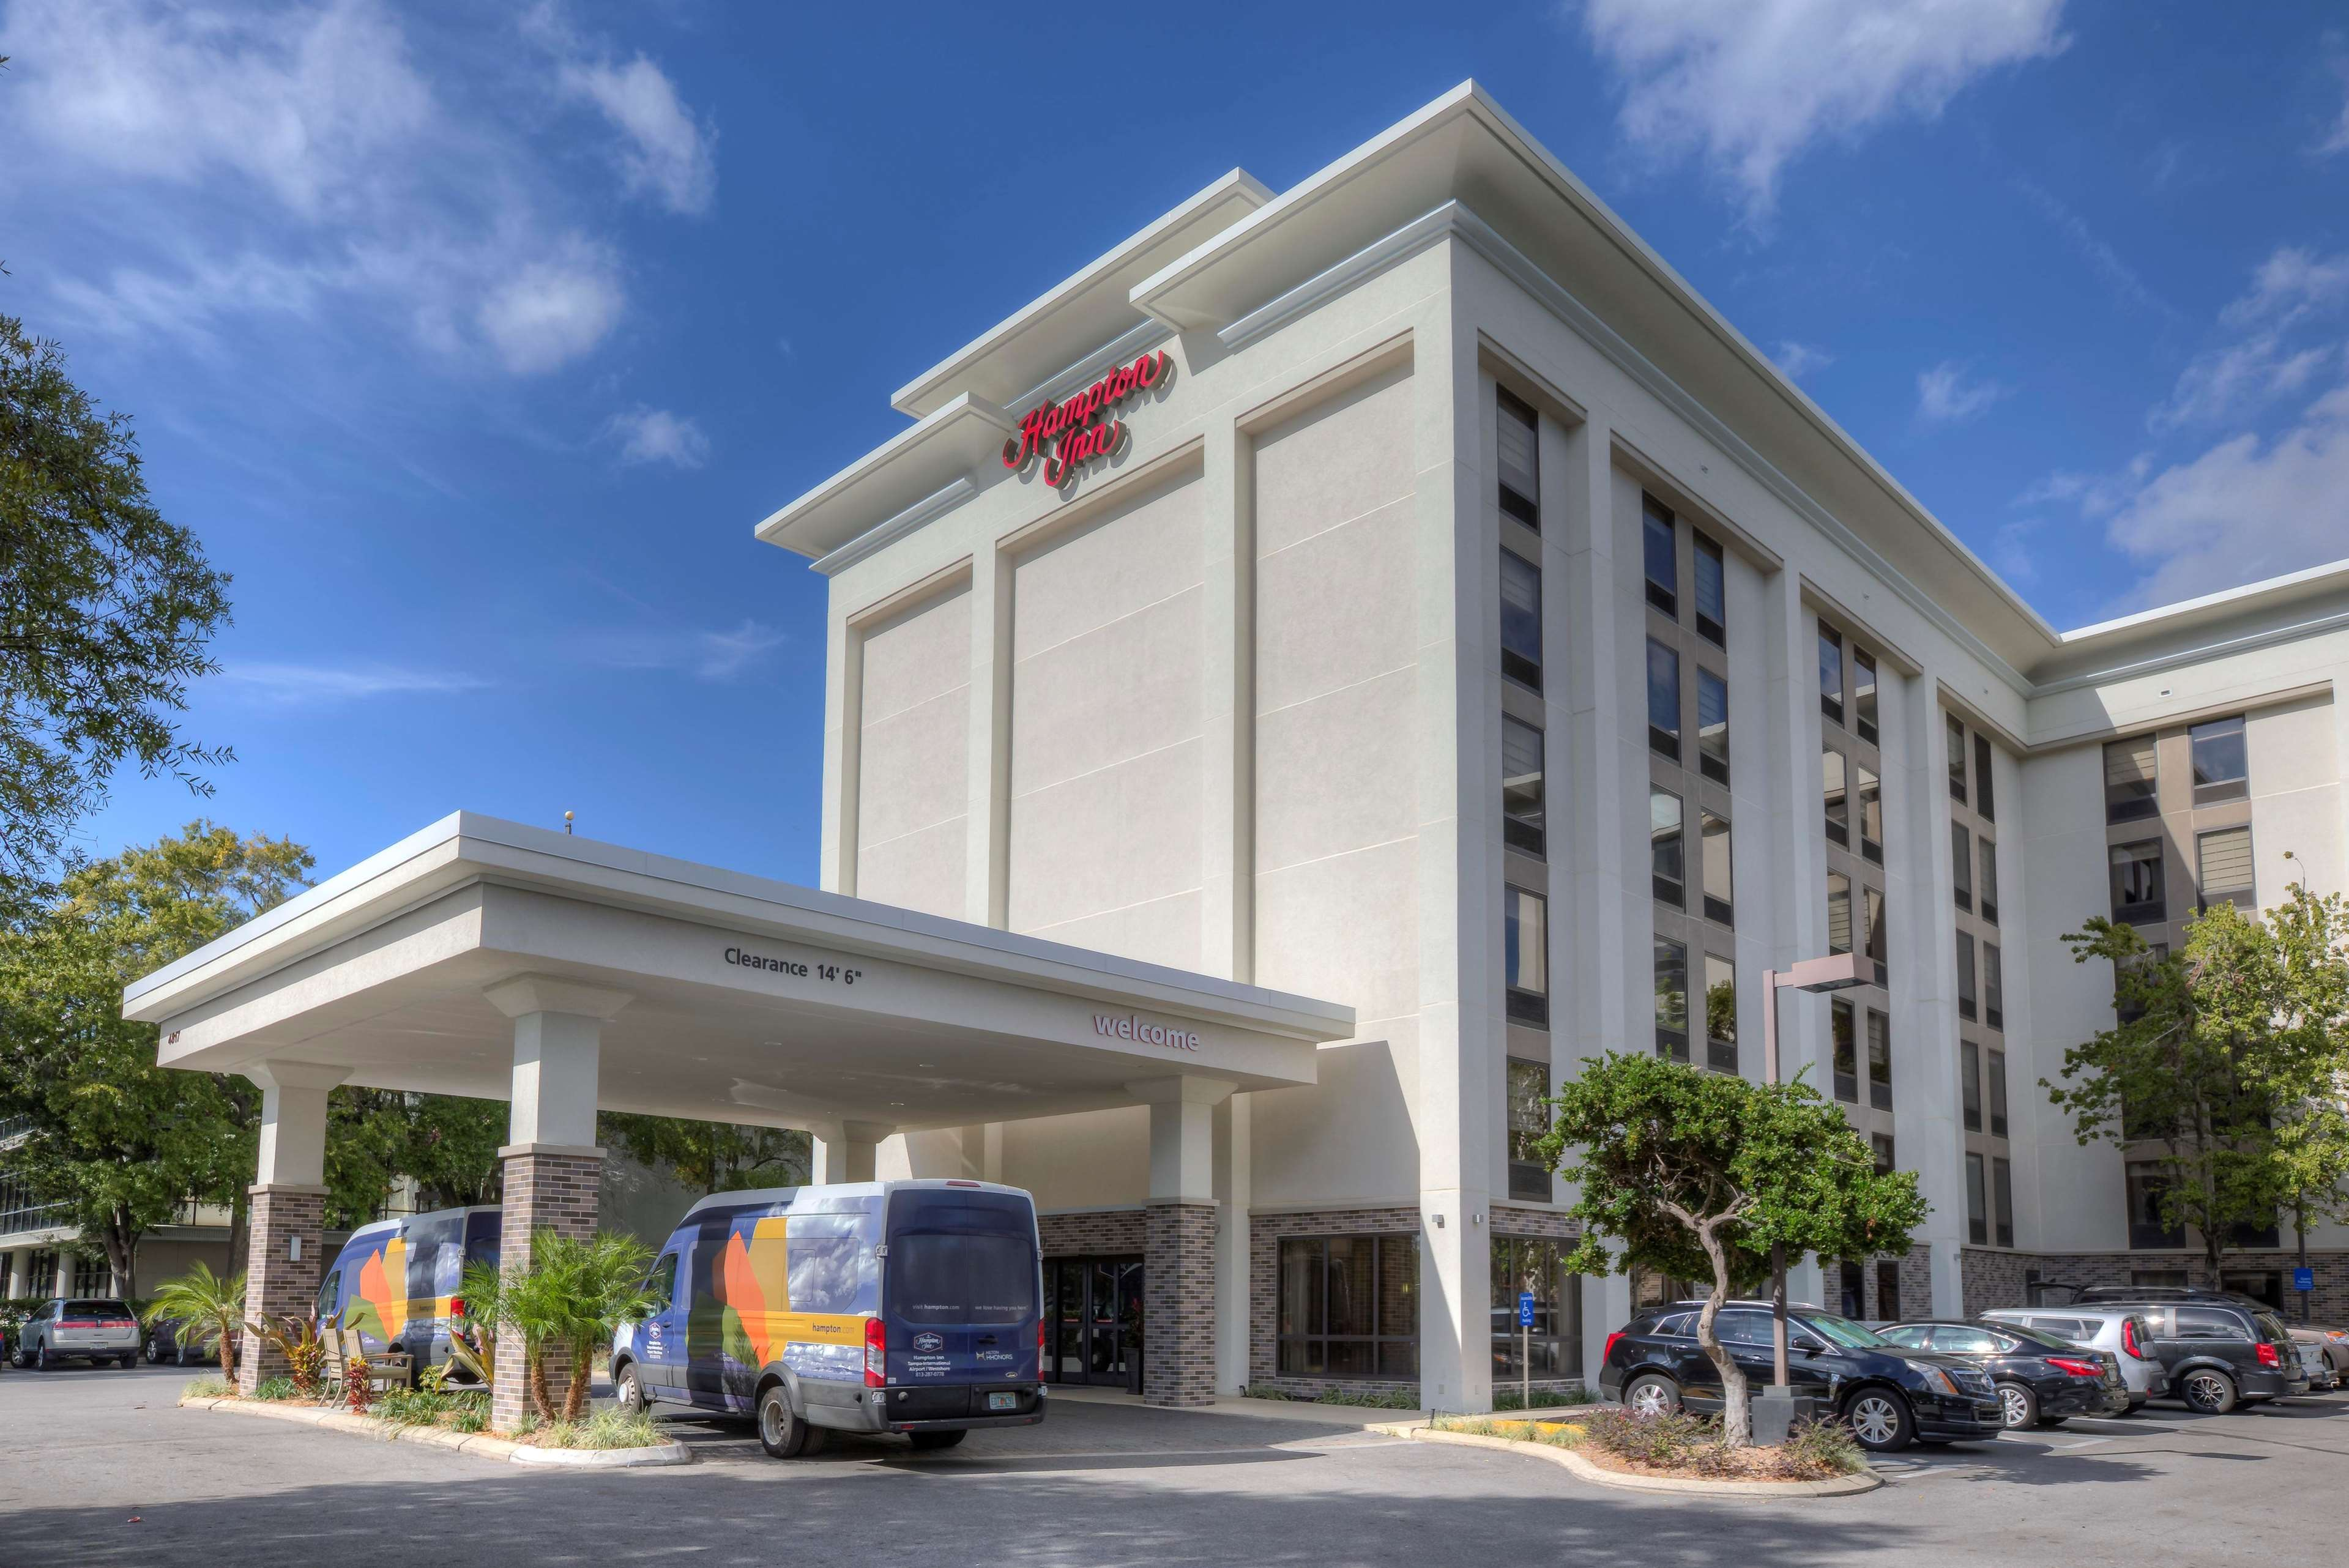 Hampton inn tampa veterans expwy airport north tampa fl business directory for Days inn tampa north of busch gardens